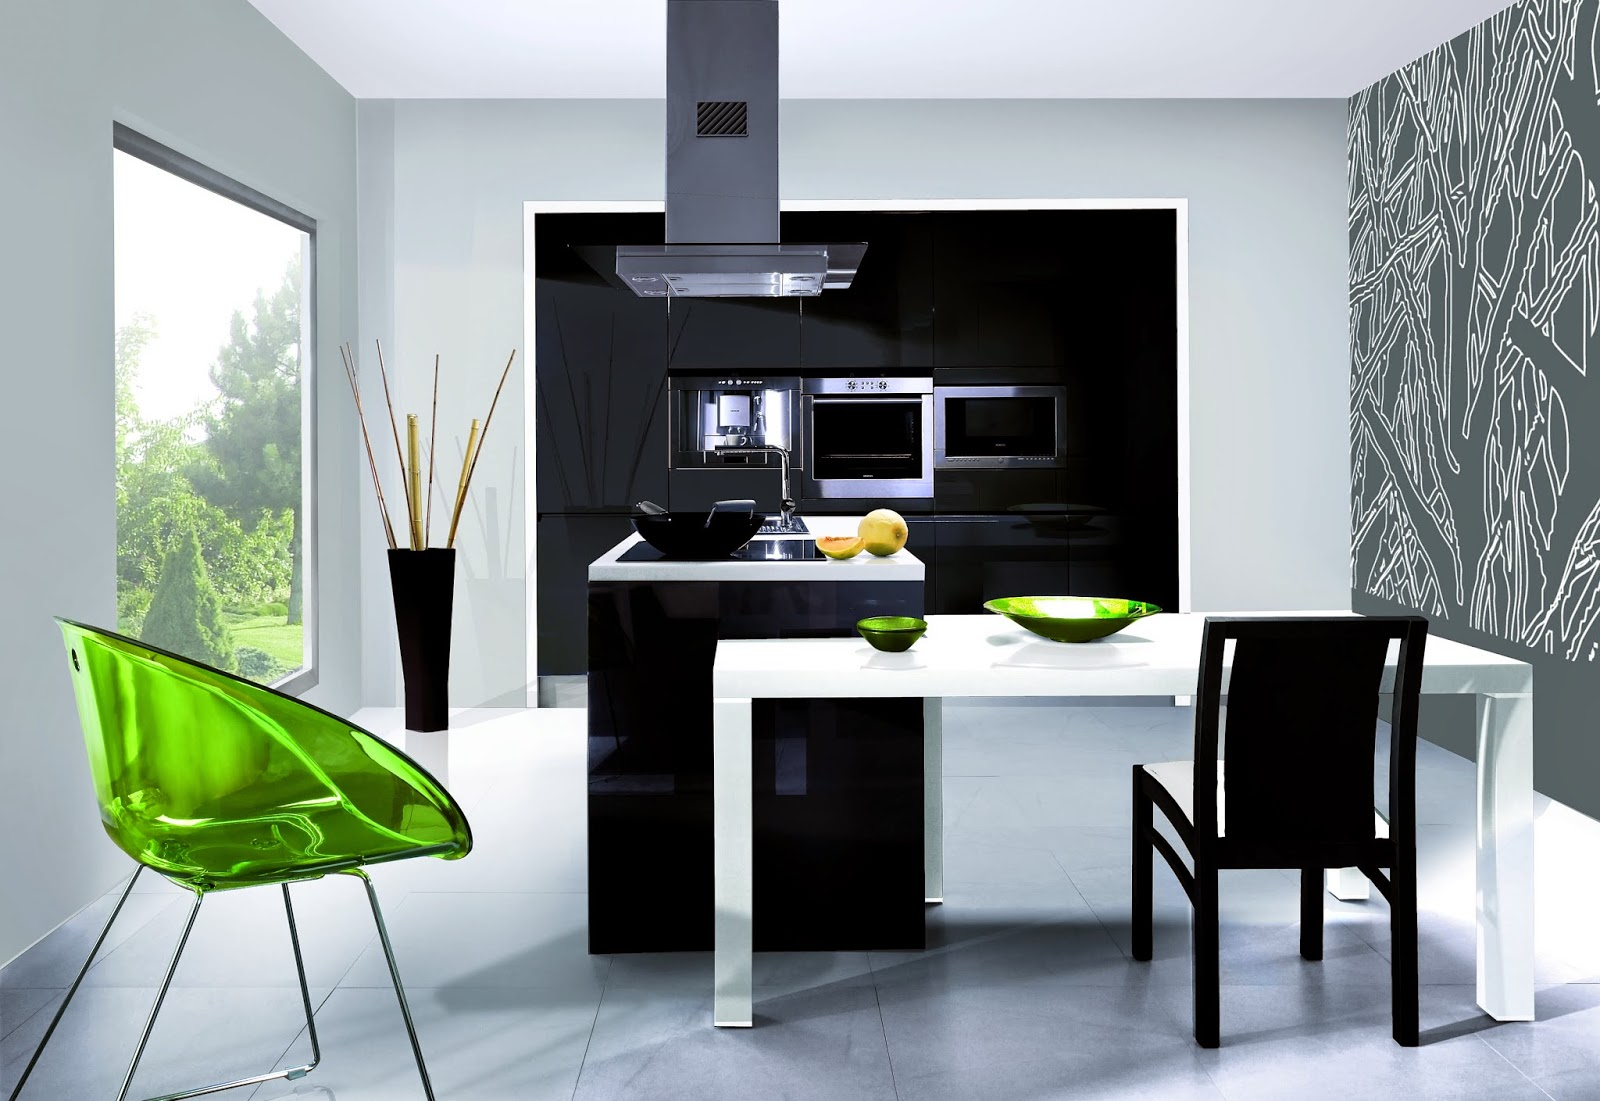 15 elegant minimalist kitchen designs with modern kitchen furniture - Minimal kitchen design ...